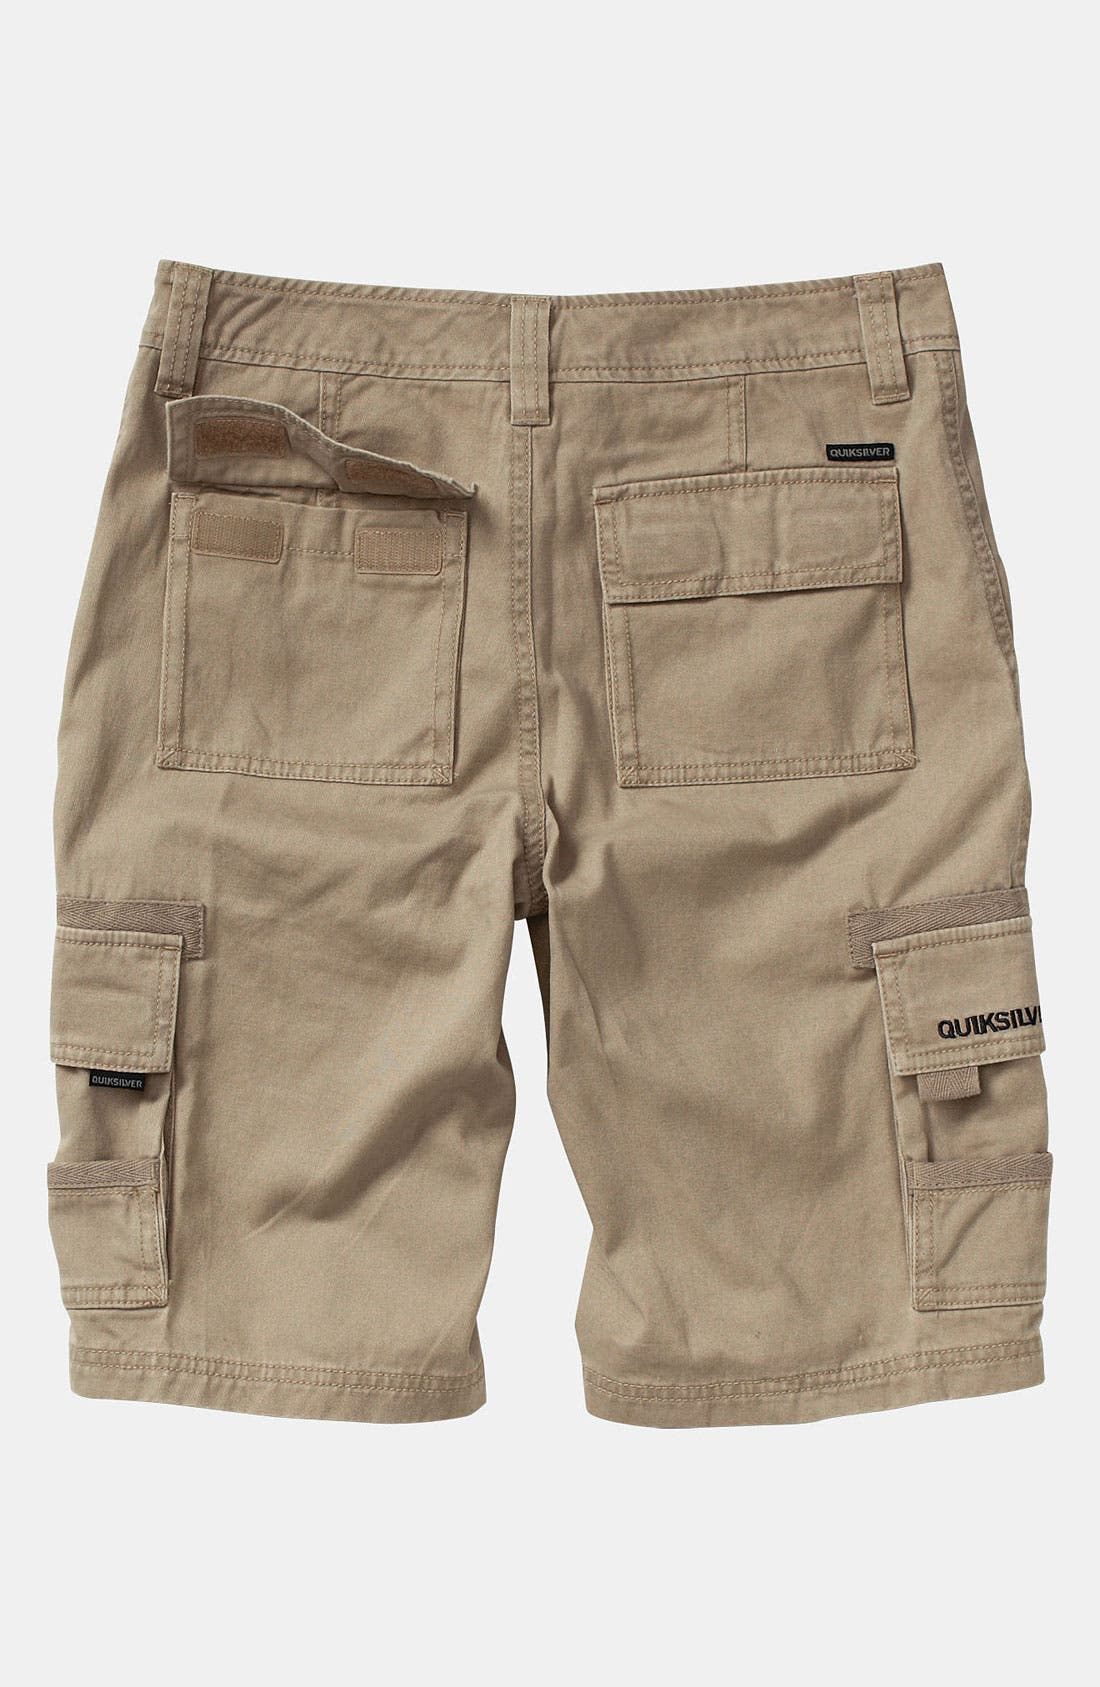 Alternate Image 3  - Quiksilver 'Escargot' Cargo Shorts (Big Boys)